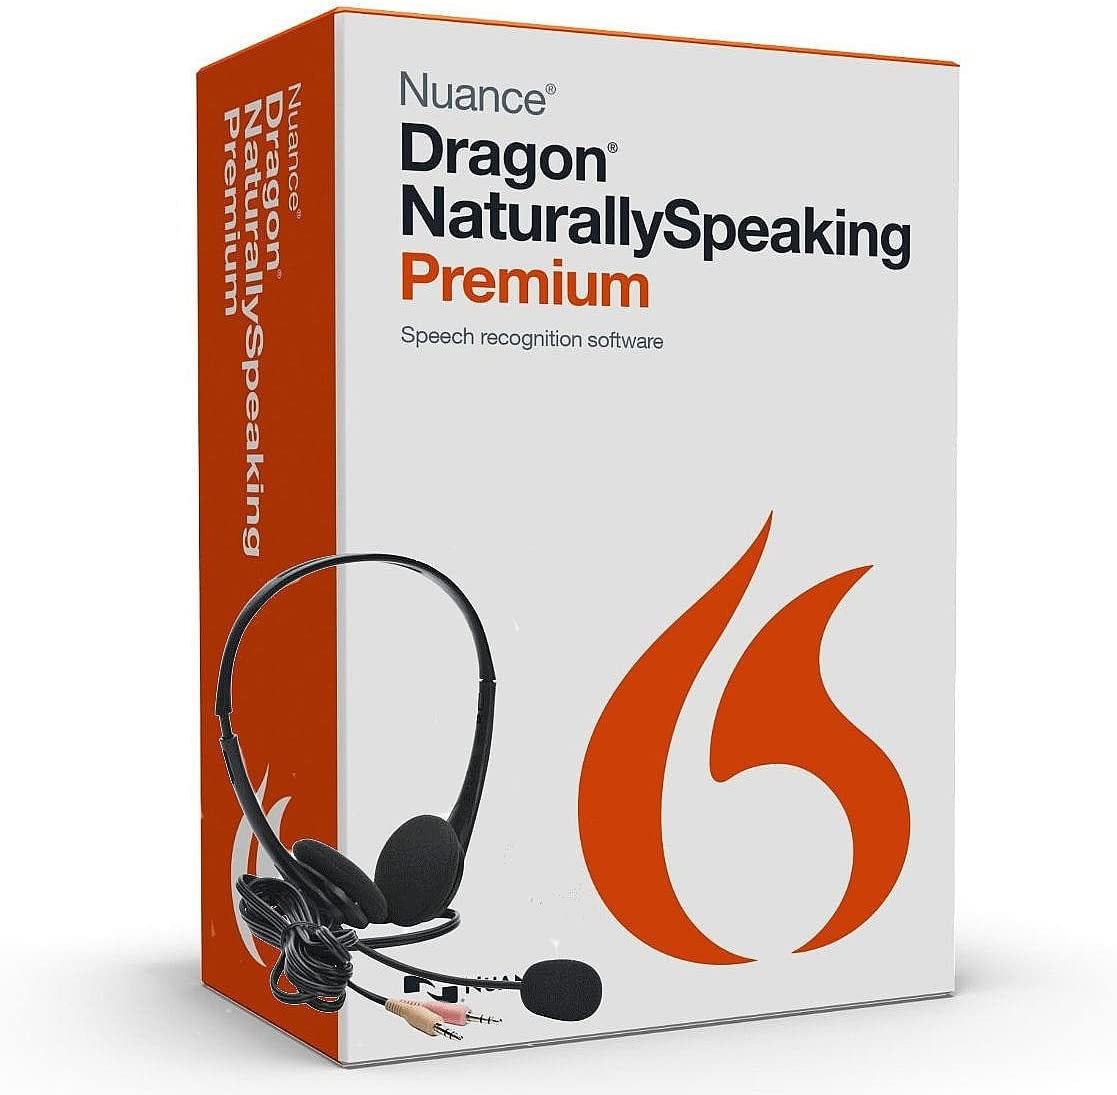 dragon naturally speaking software for windows 7 free